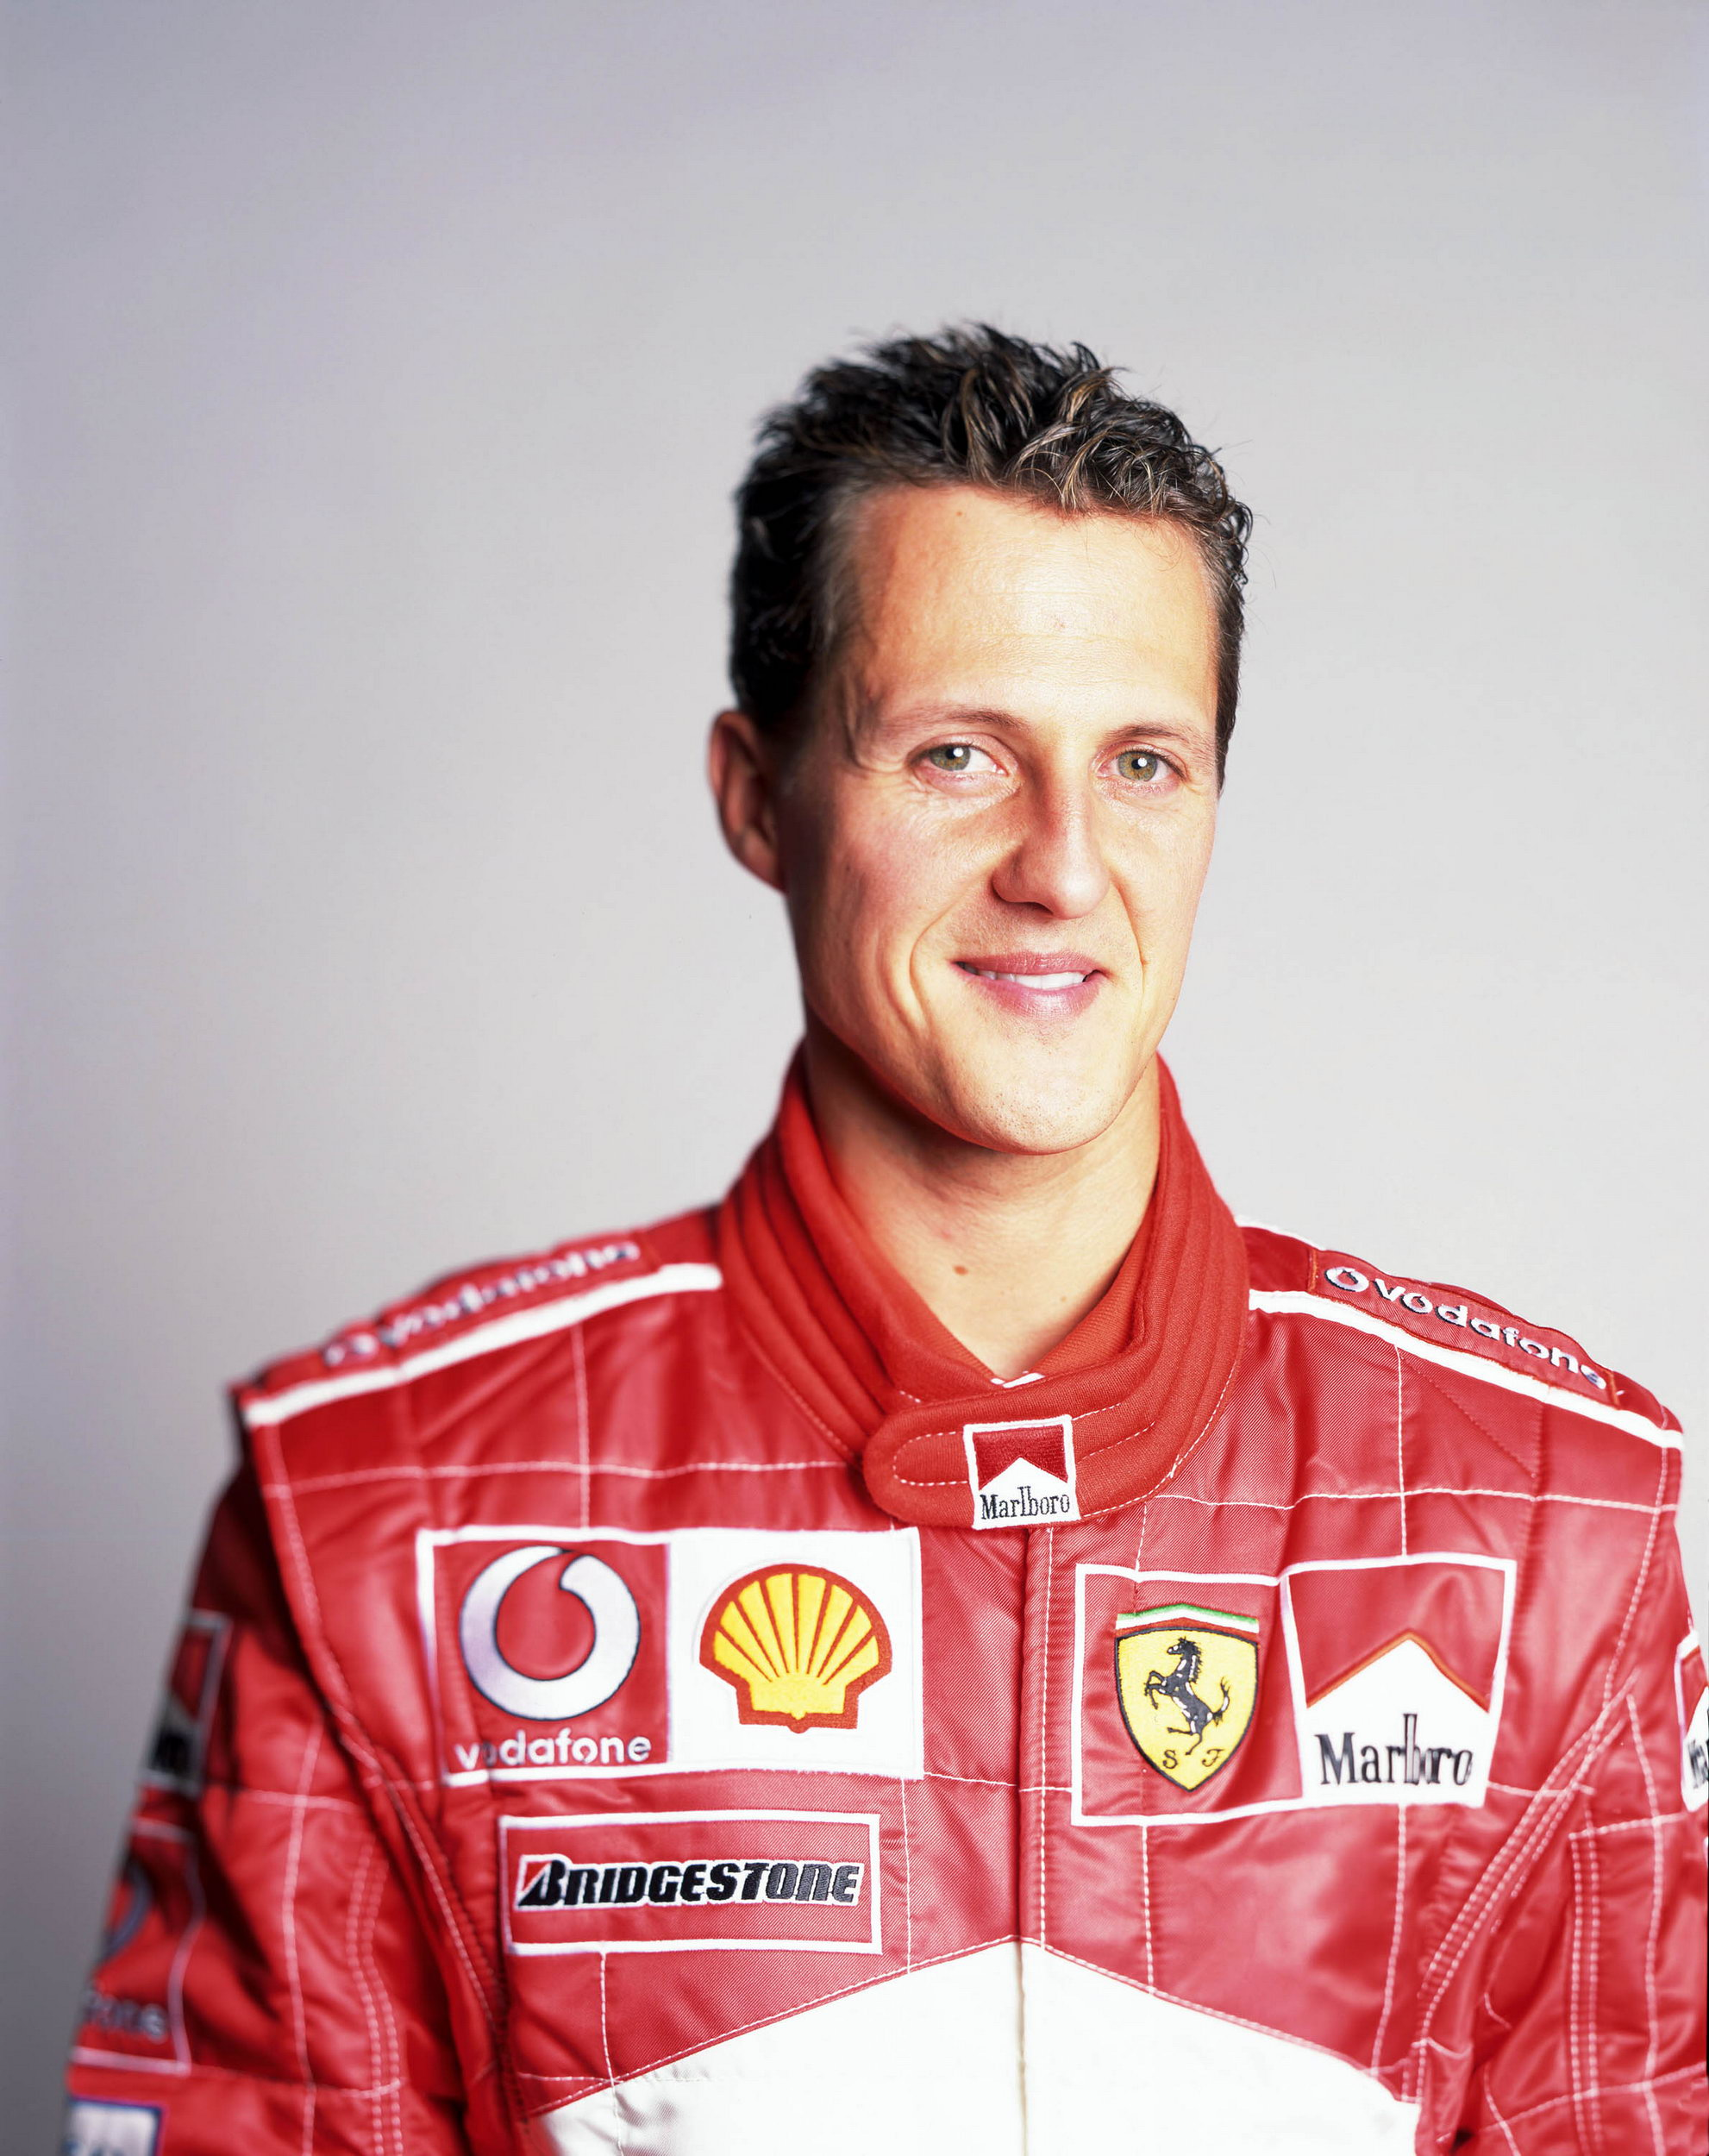 michael schumacher photo 10 of 23 pics wallpaper photo 245624 theplace2. Black Bedroom Furniture Sets. Home Design Ideas